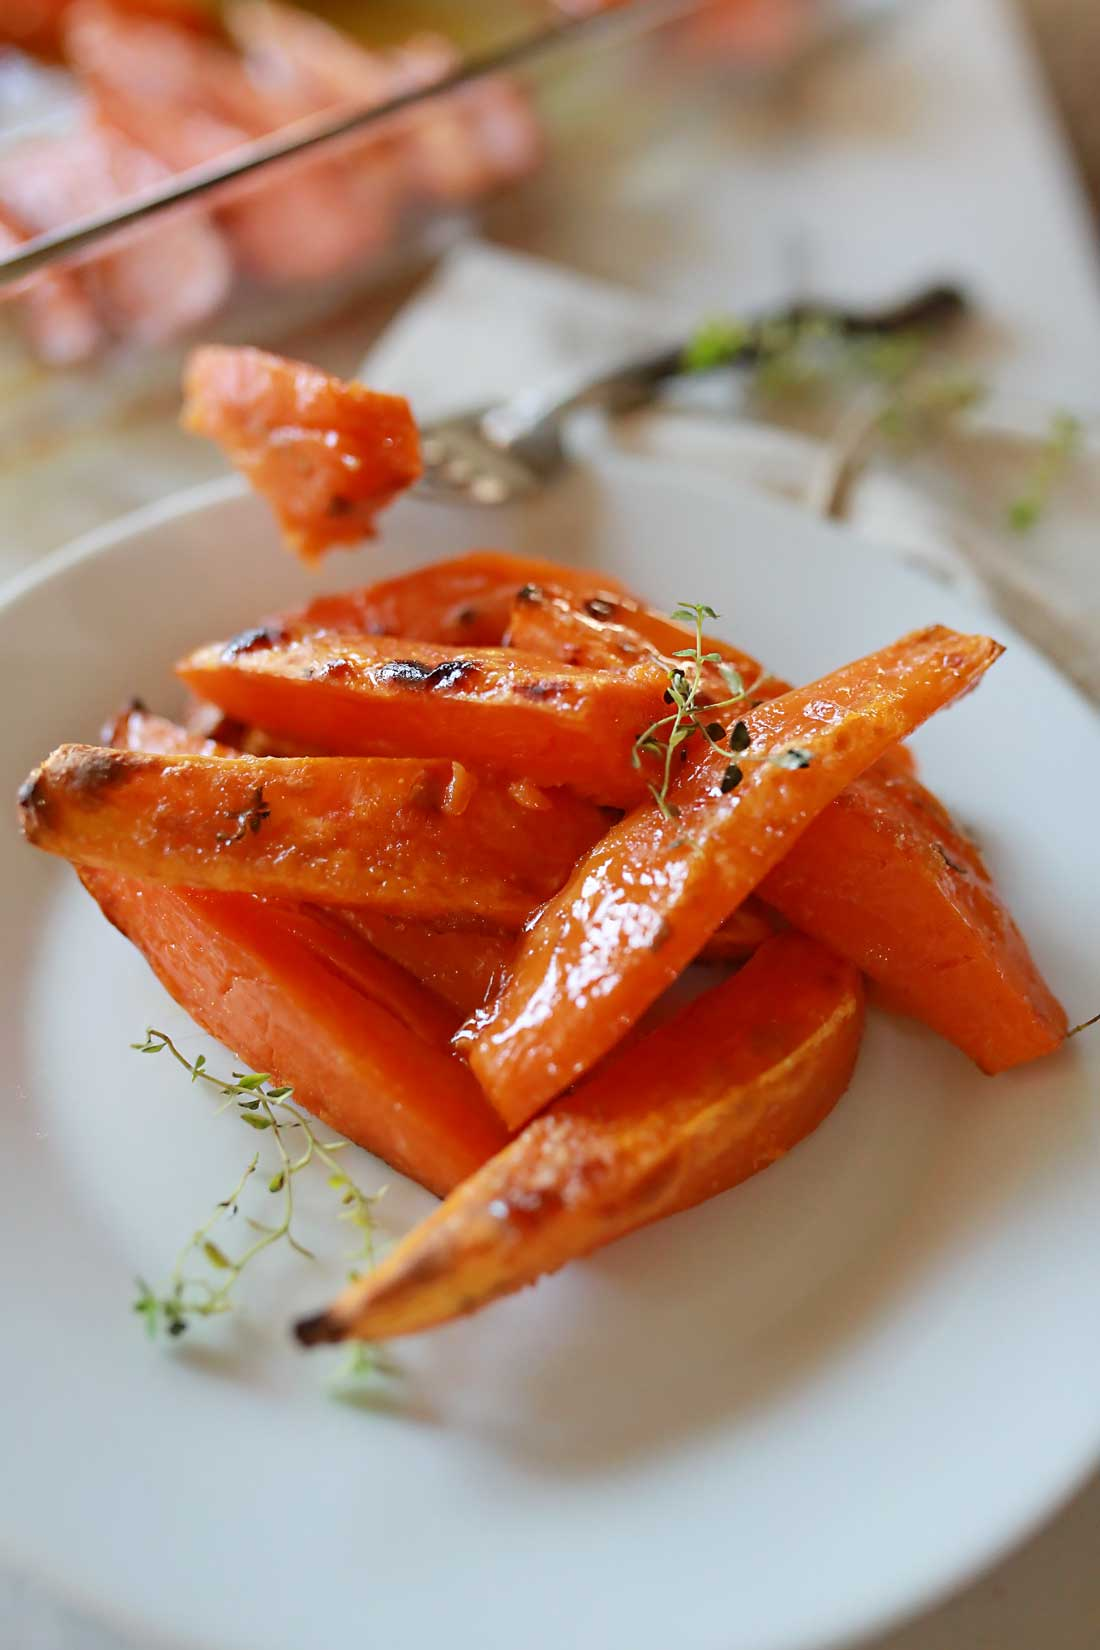 Caramelized Sweet Potato Wedges with herbs! Delightful!!!